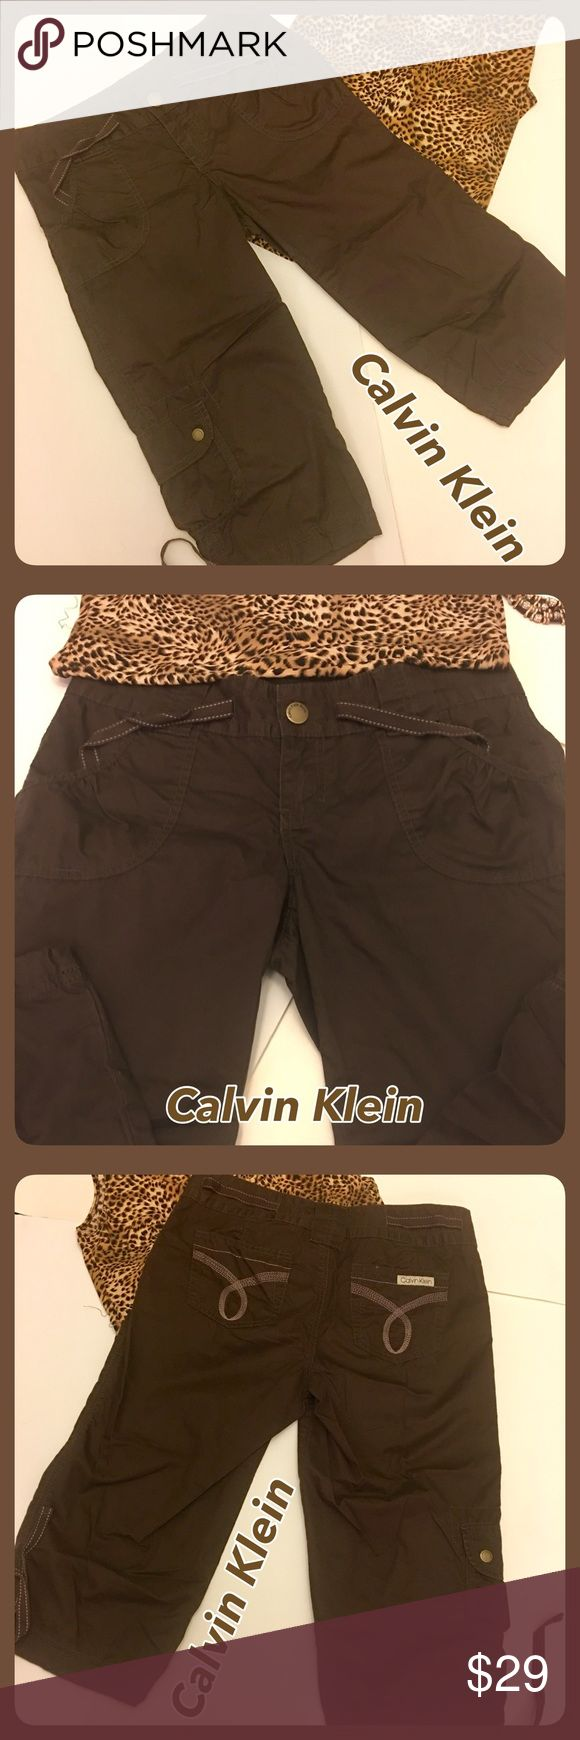 Calvin Klein Crop Brown Cotton Pants size 6 Very cute! Brown Calvin Klein Crop pants with tie at bottom of legs. Back pockets, front pockets. Cute pocket on bottom of right leg. Like New! Says 6P, but I don't see a difference in 6P & regular. Will provide measurements! Calvin Klein Pants Ankle & Cropped